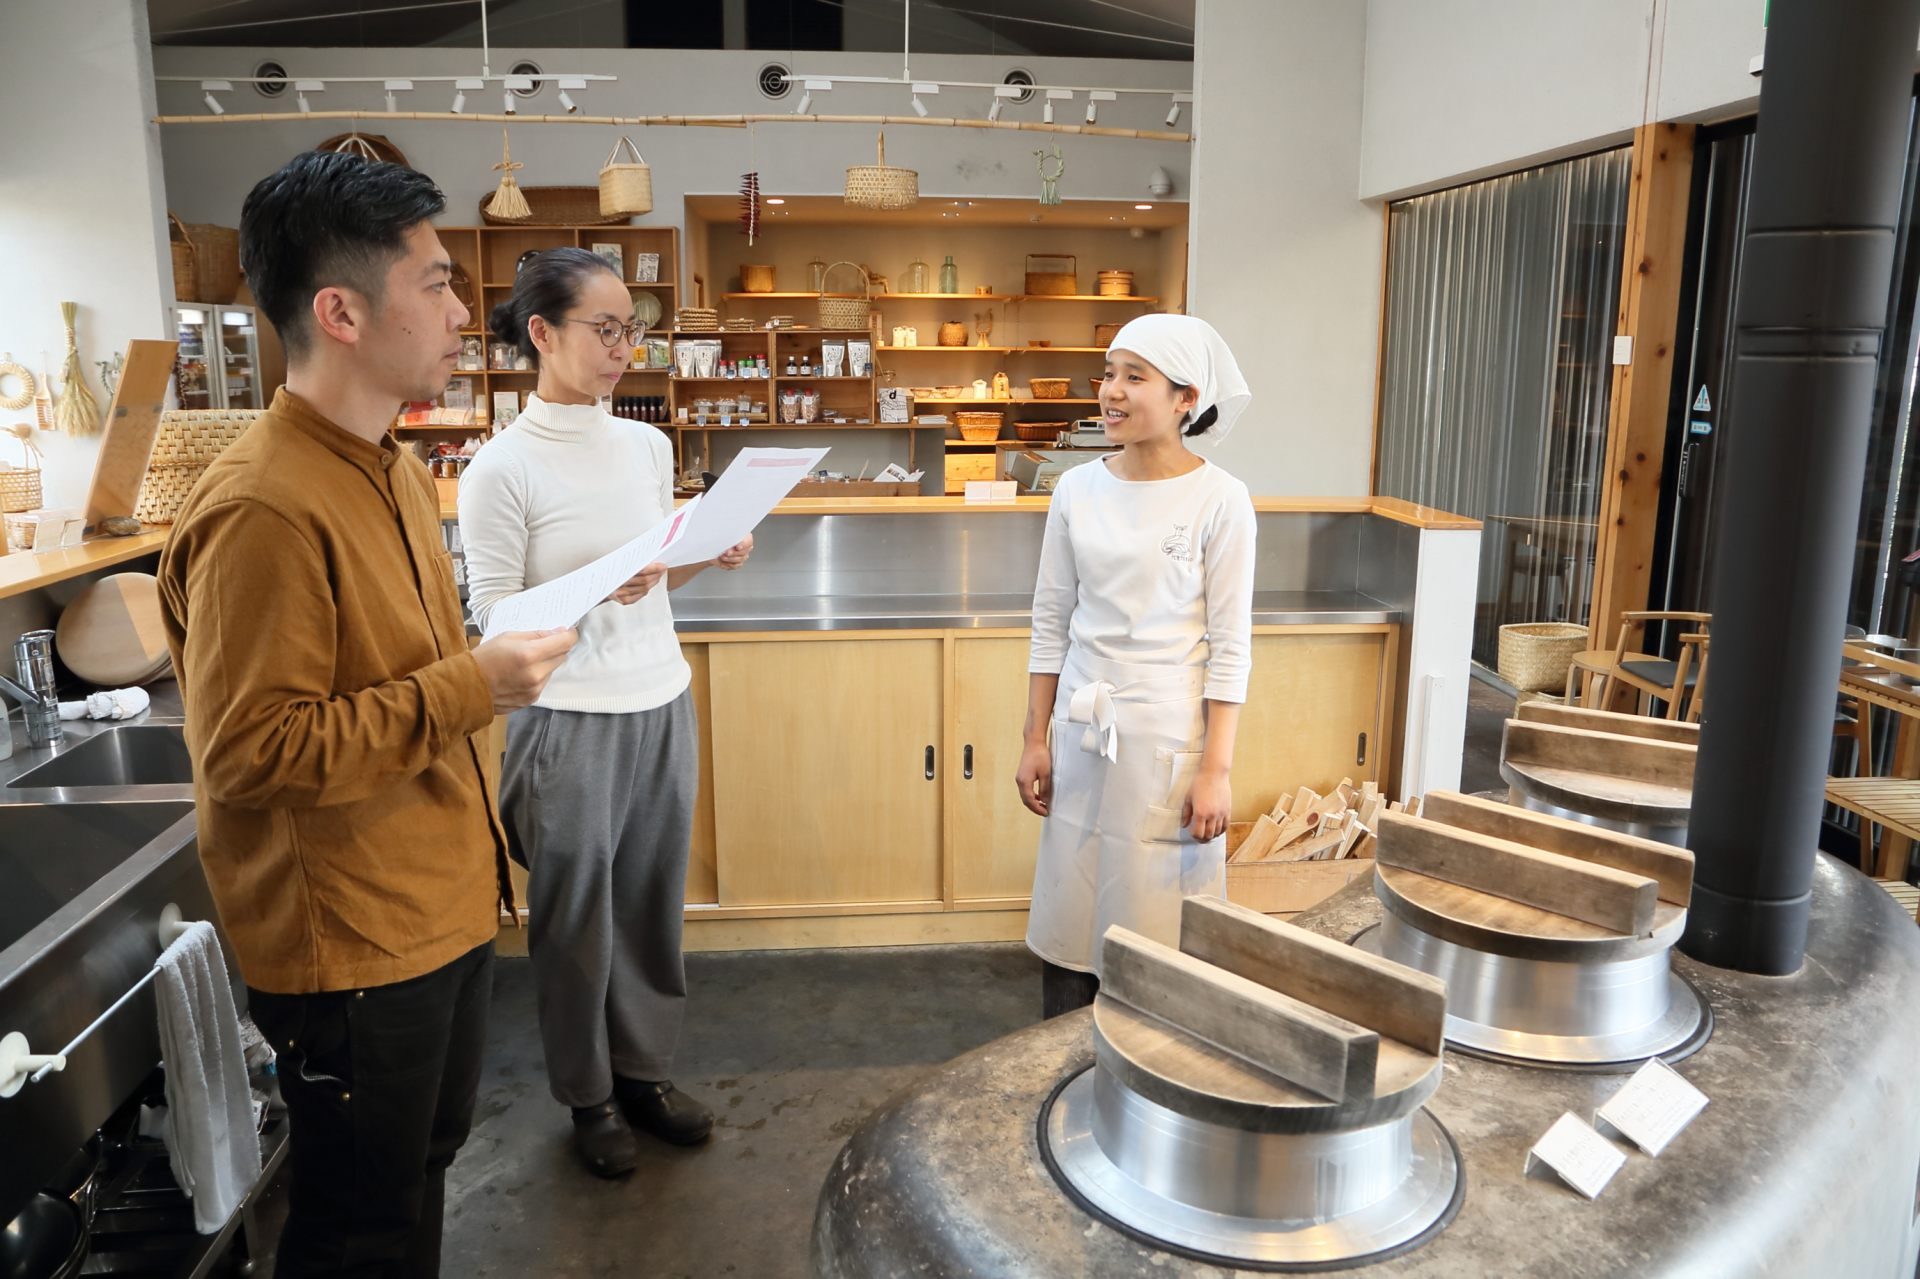 Ms. Yamashita (left) kindly giving an explaination to guests in front of the hearth.